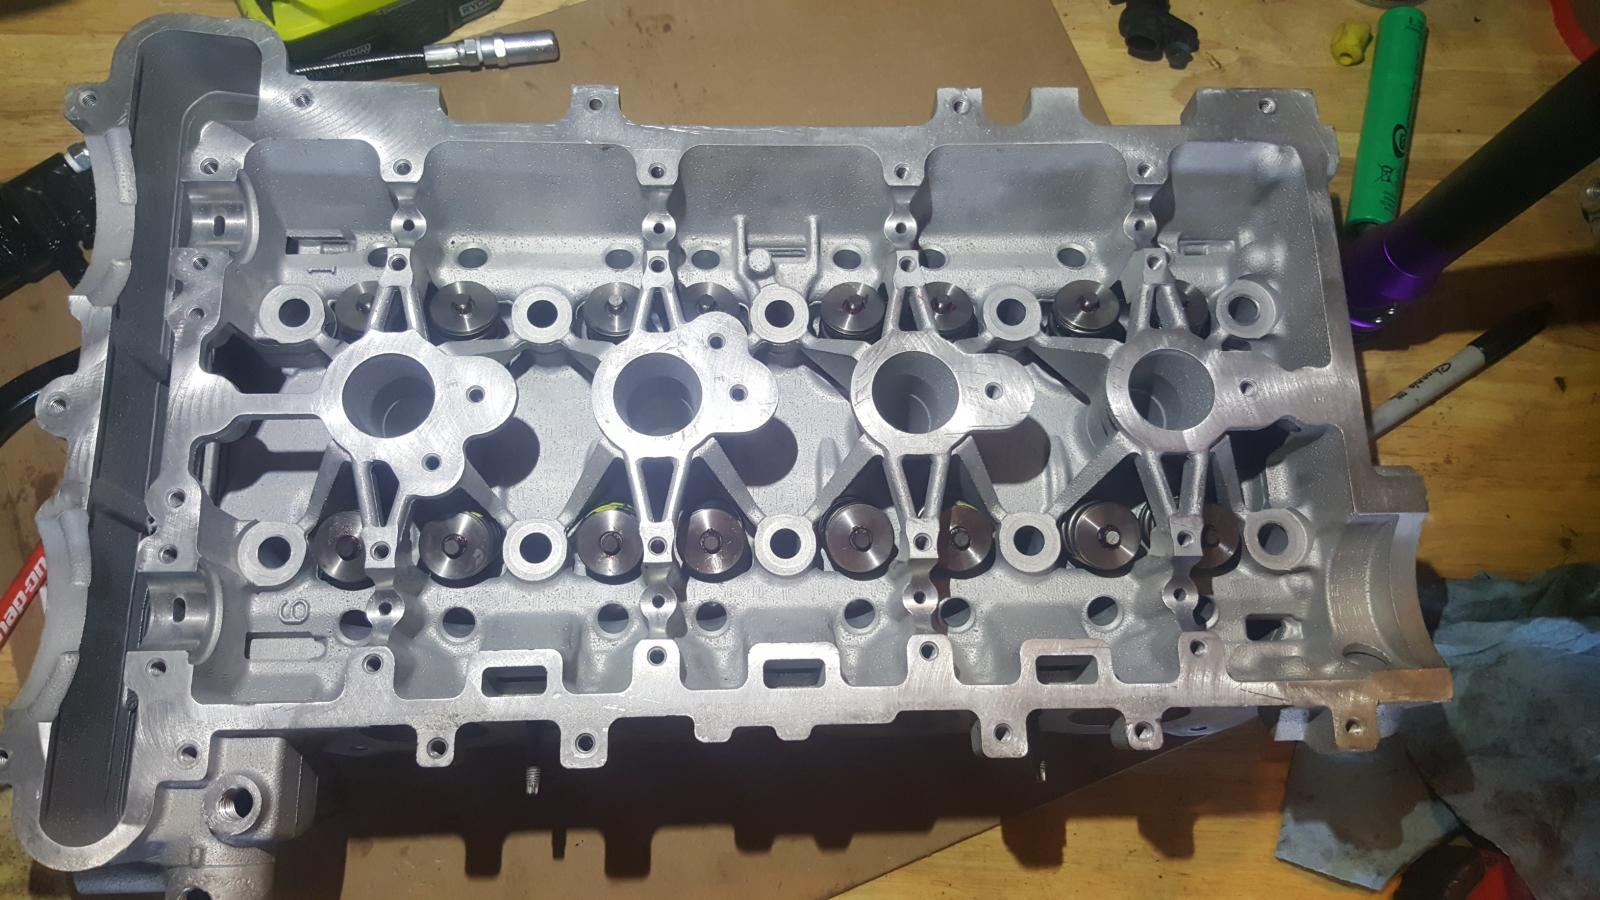 The Racing Monster Called Bugzilla Engine Swap Depot Gm Ecotec Sean Reviewed Several Options But Settled On Gms All Aluminum Inline Four Originally Used A 22 L After Spinning Bearing